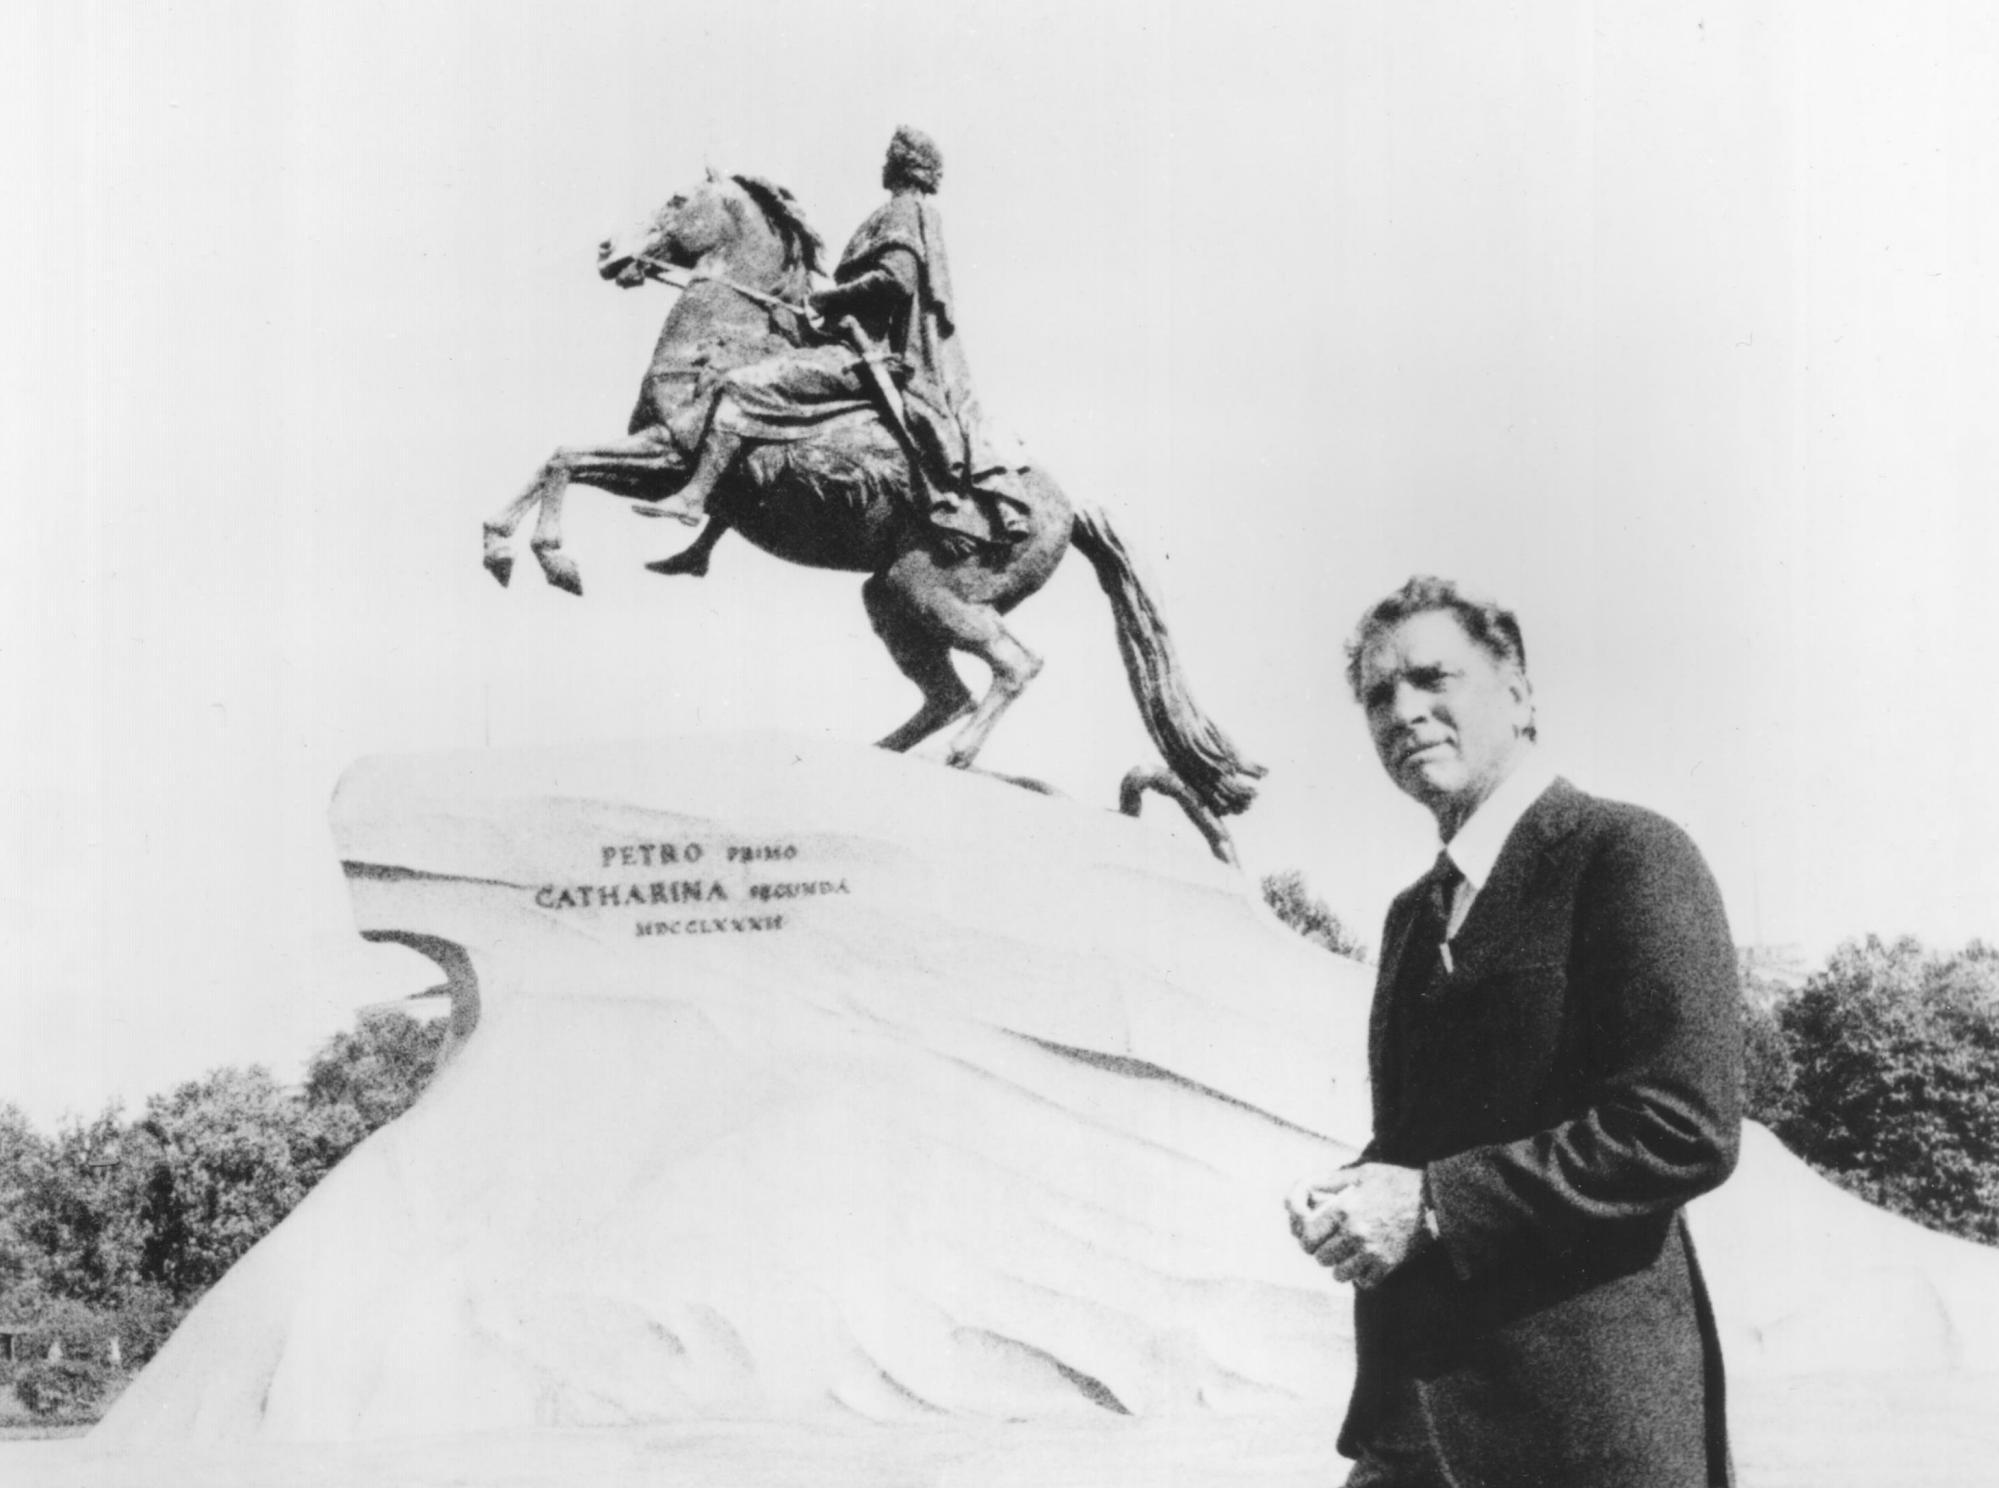 Burt Lancaster poses before a statue of Peter the Great